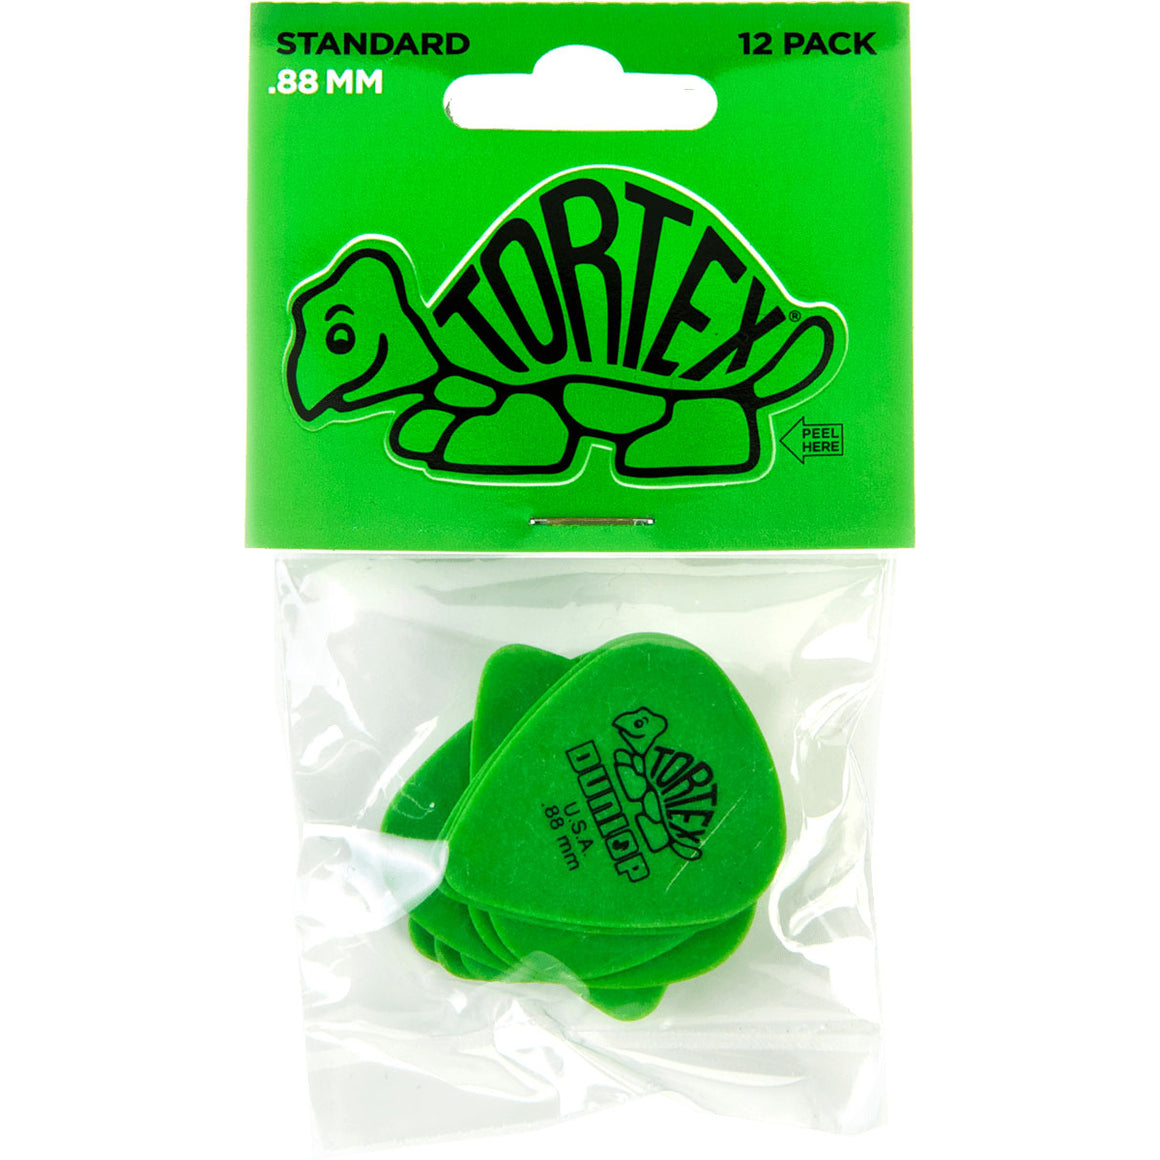 Dunlop 418P88 Tortex Standard .88 Green Guitar Picks - 12 PACK